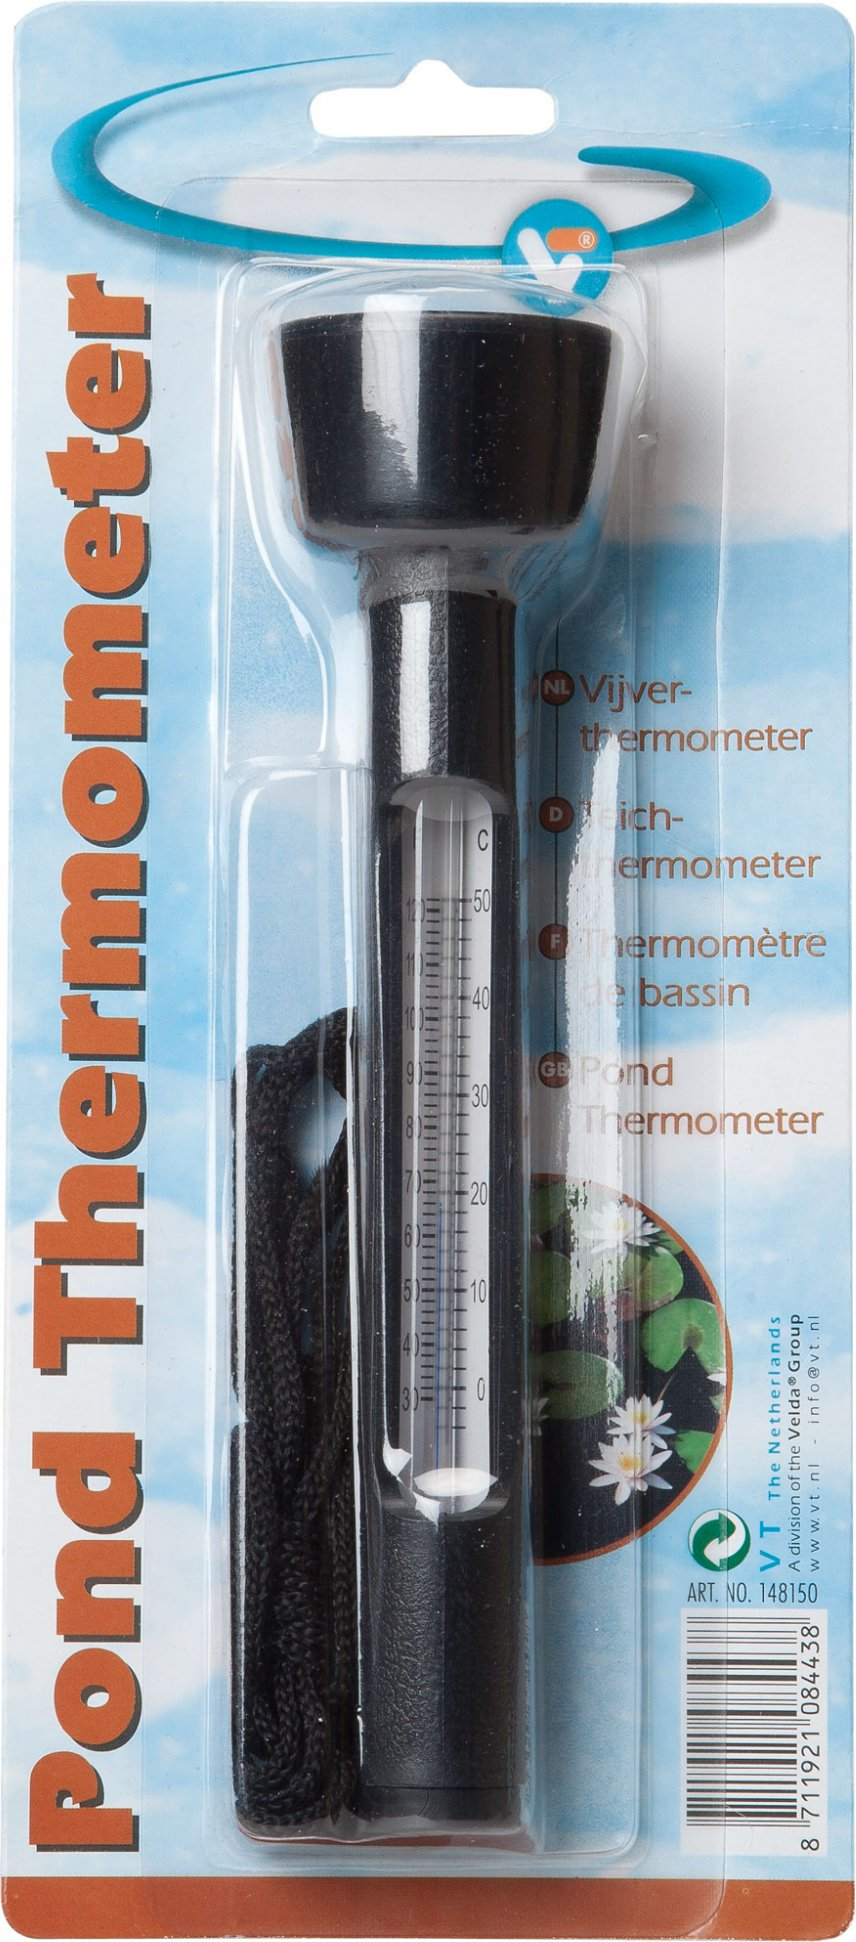 Vt pond thermometer kopen frank for Pond expert